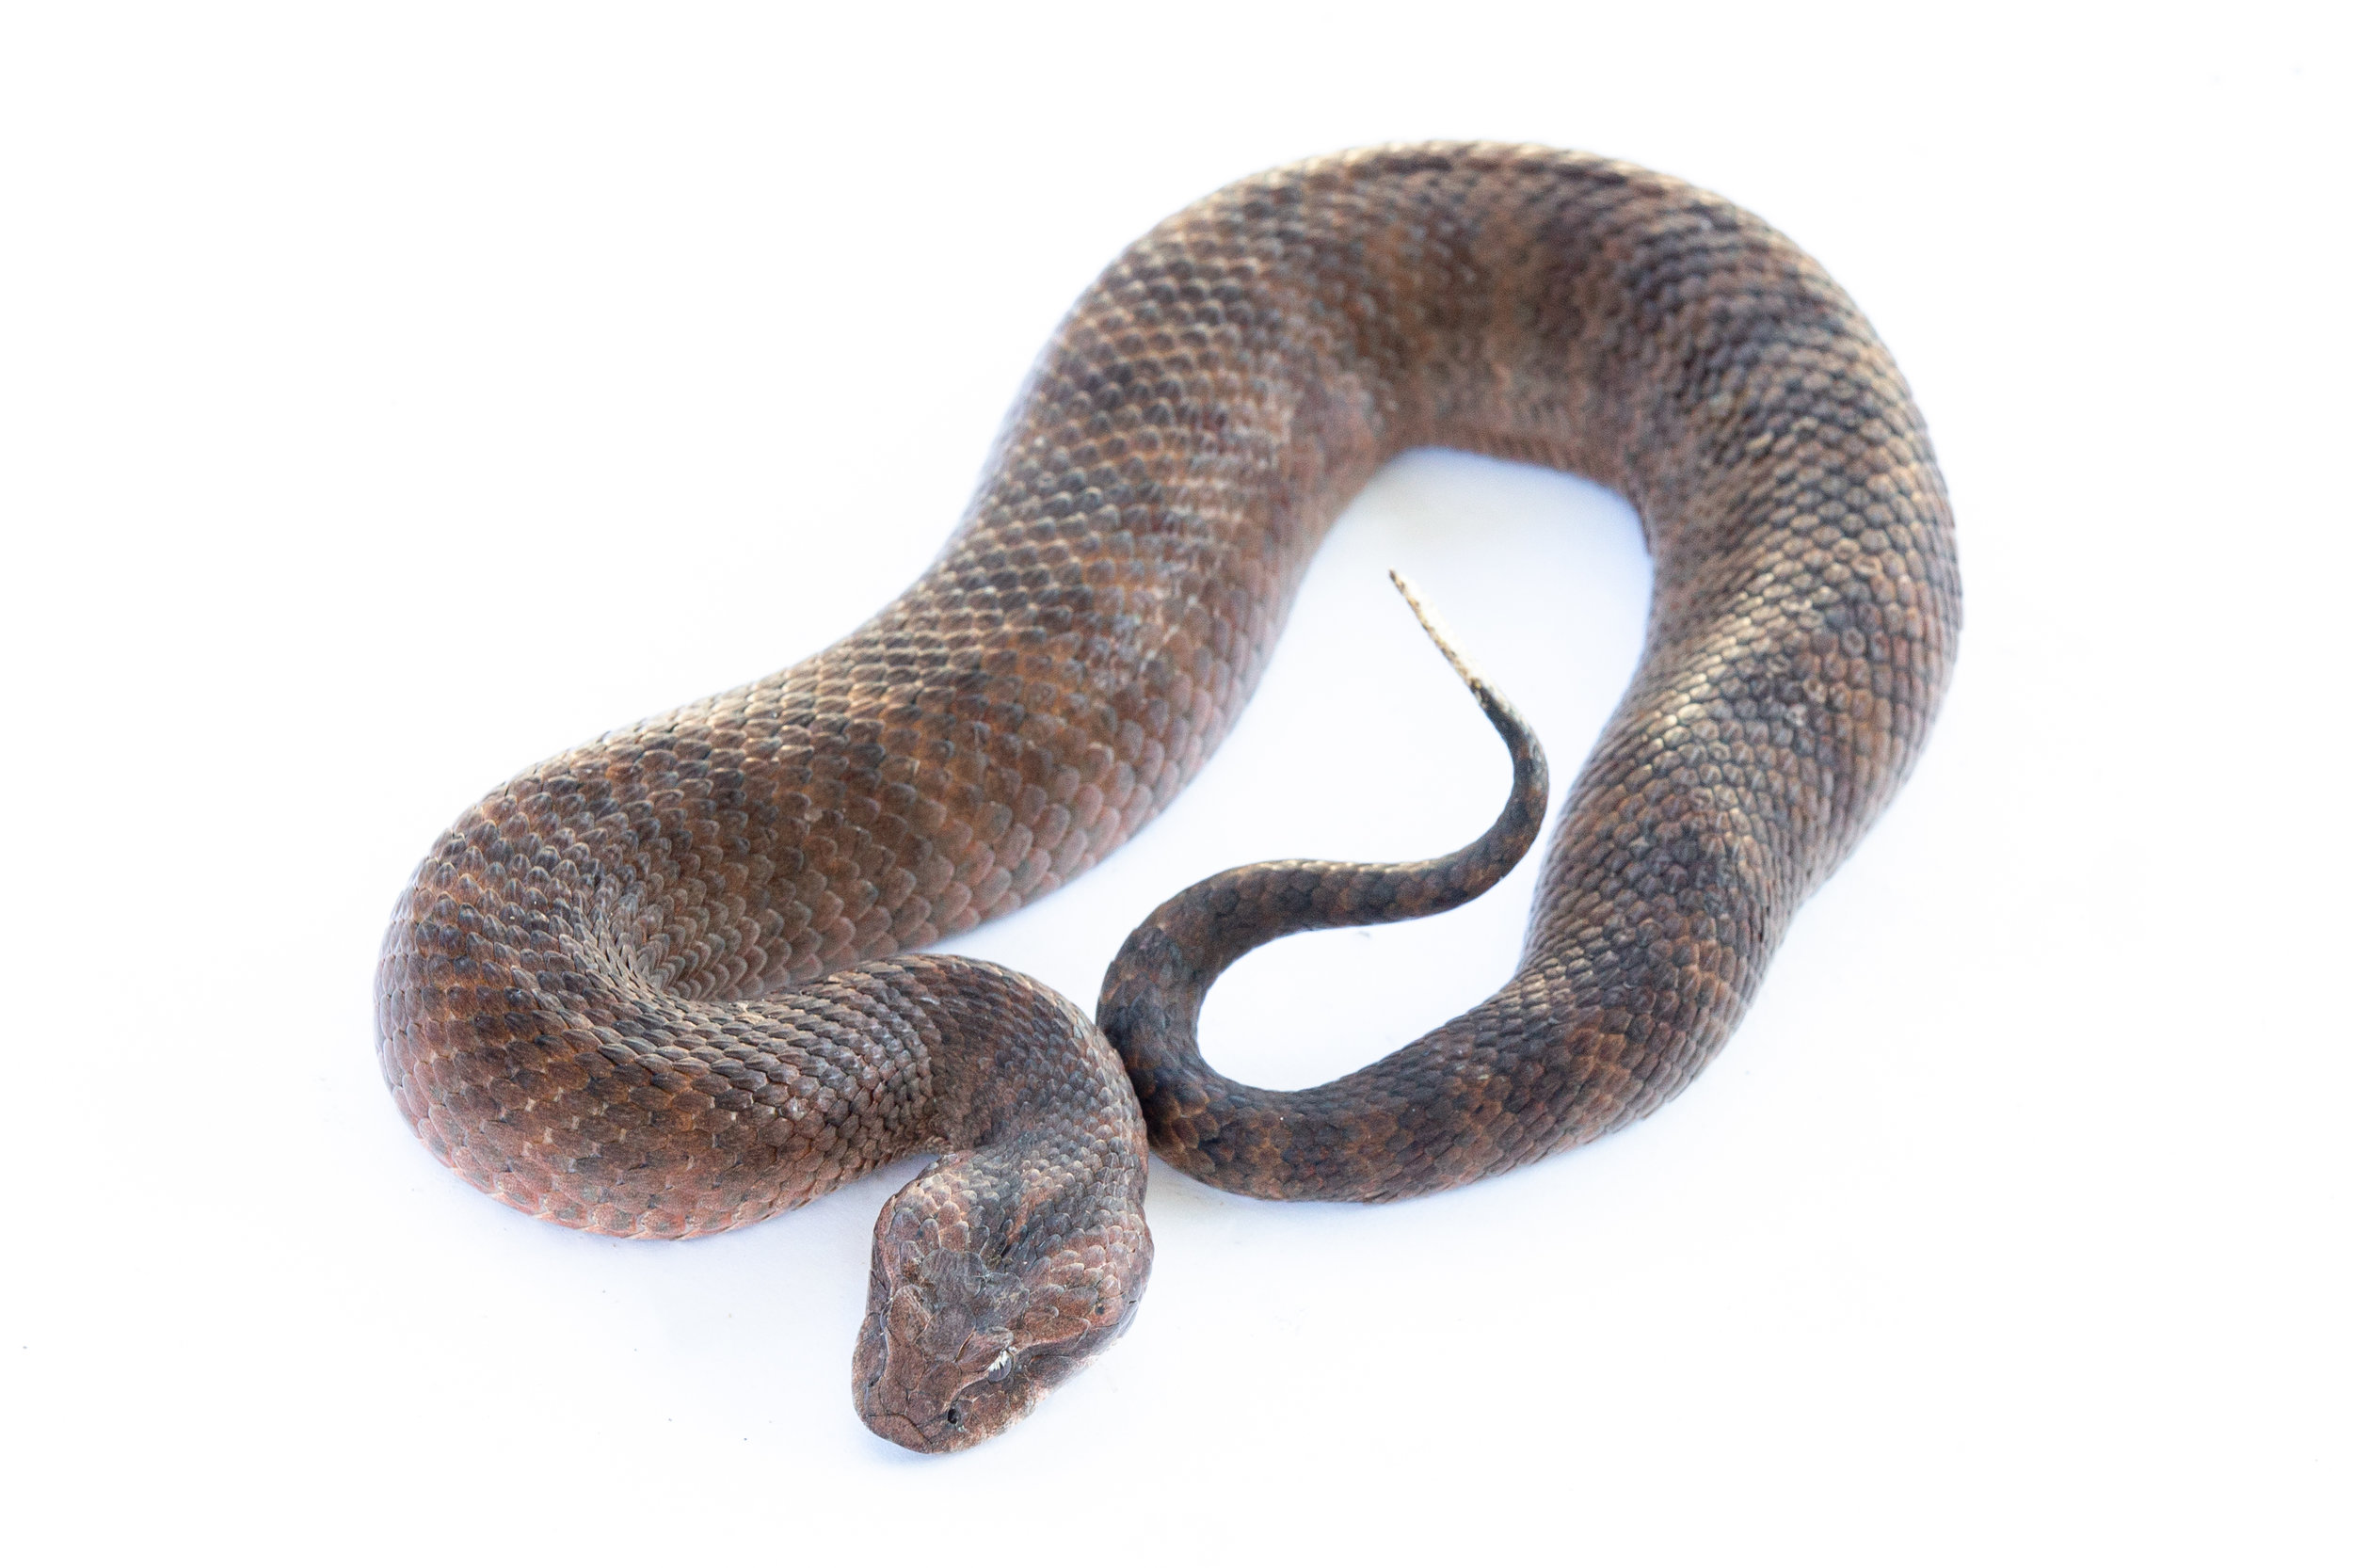 Death Adder High Res (2 of 4).jpg